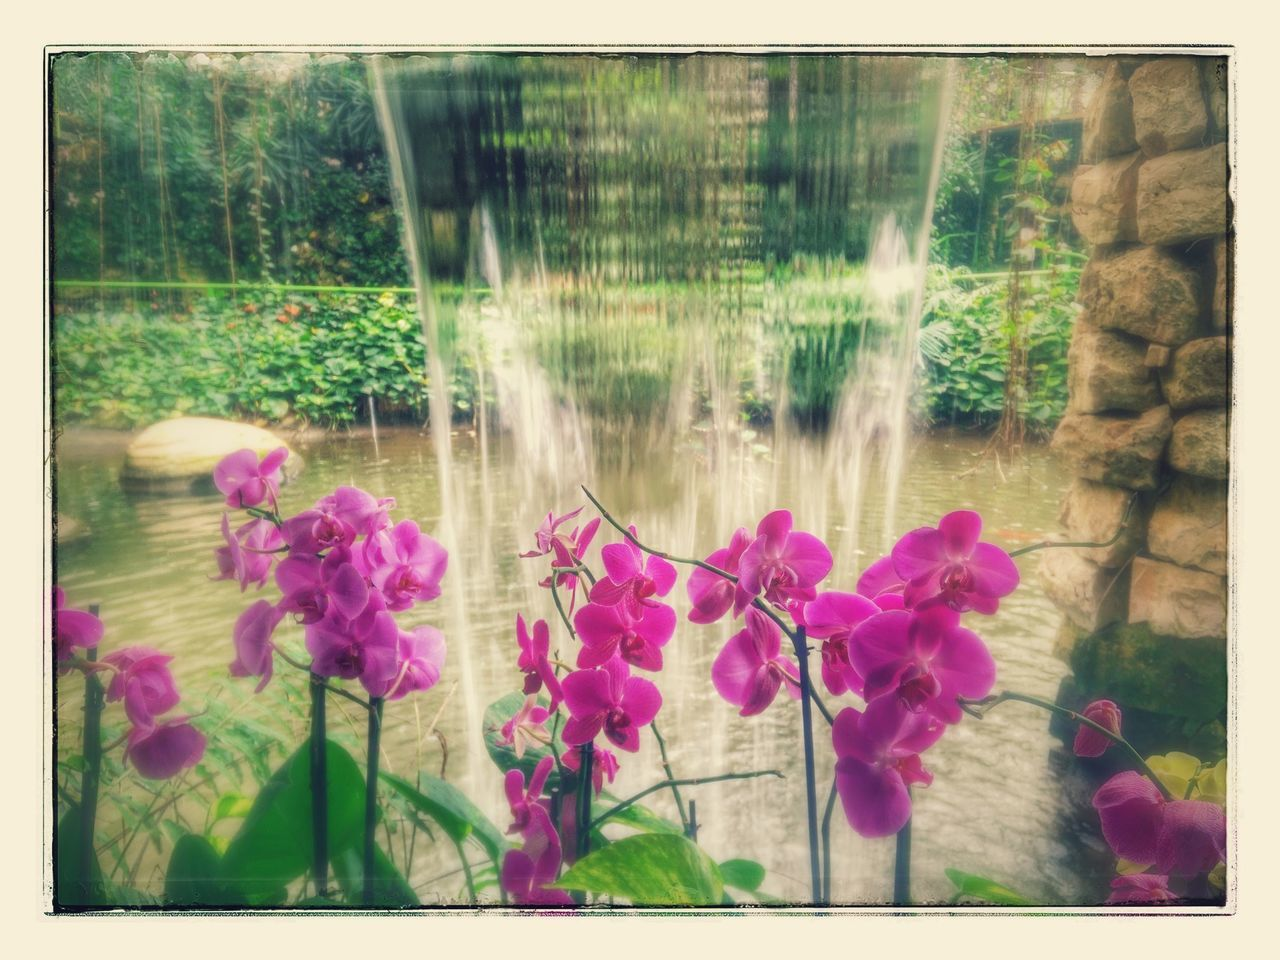 Orchids Garden Orchid Purple Orchid Waterfall Flowers Indoor Garden Indoor Gardening Indoor Garden Pool Orchid Blossoms Orchidea Tranquil Scene